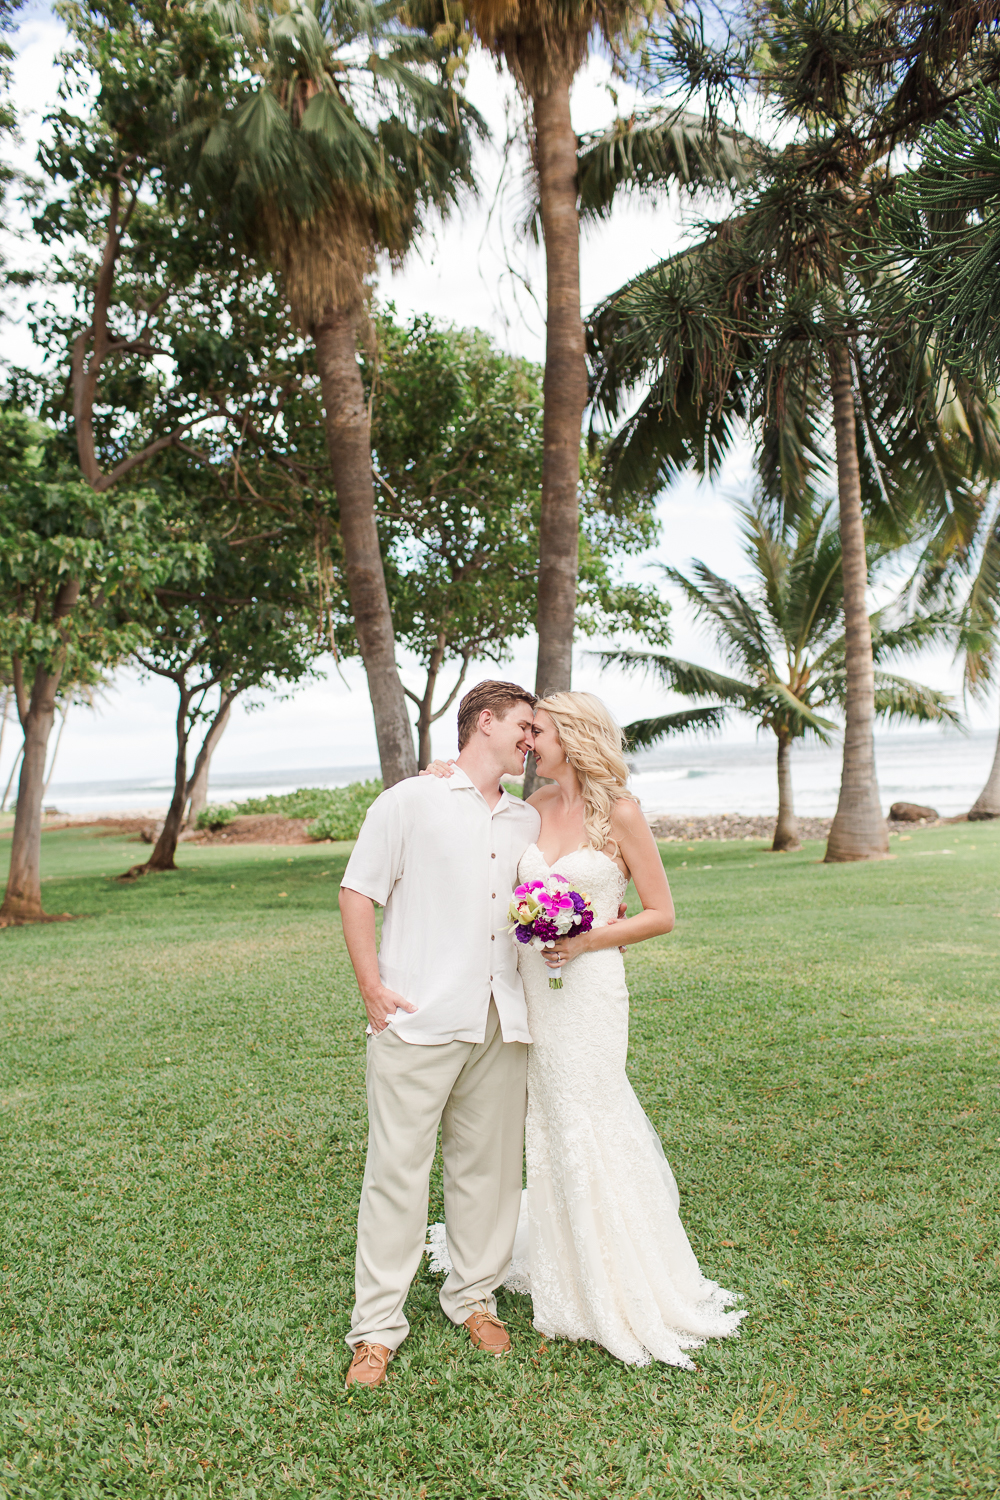 olowaluplantationwedding_hawaiiw_ellerosephoto_-71